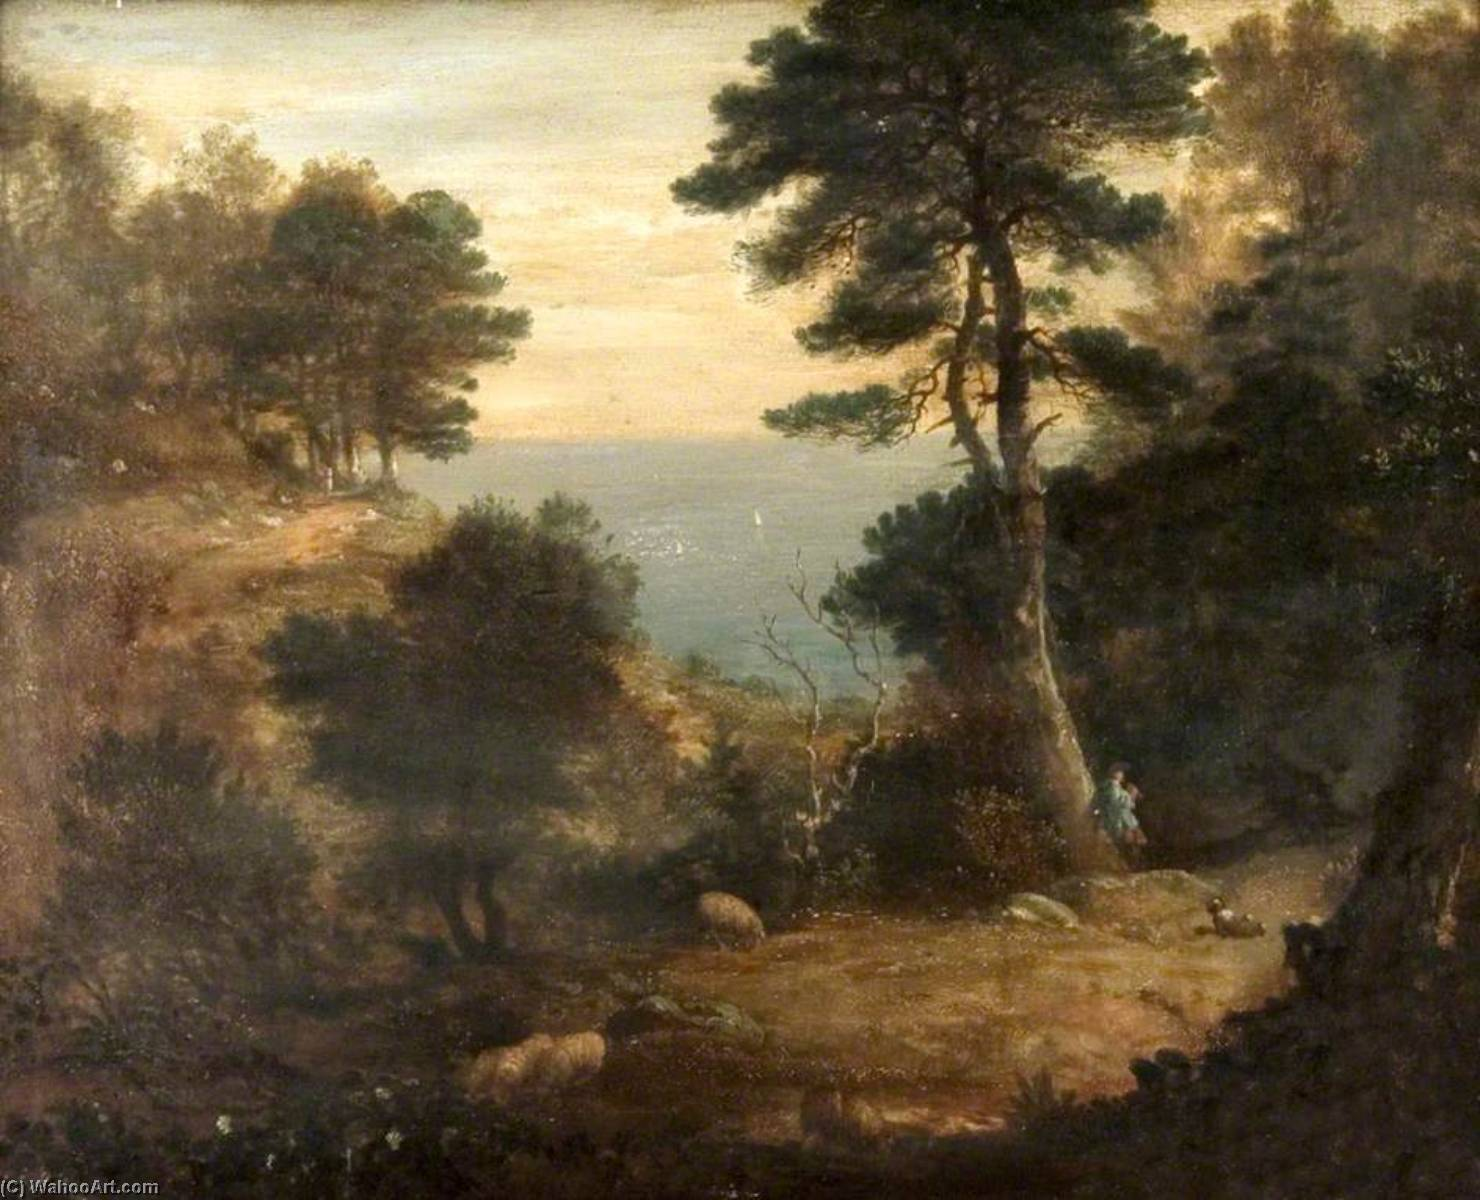 Buy Museum Art Reproductions | Drovers with Sheep on a Wooded Clifftop Path by Ambrose Bowden Johns (1776-1858) | WahooArt.com